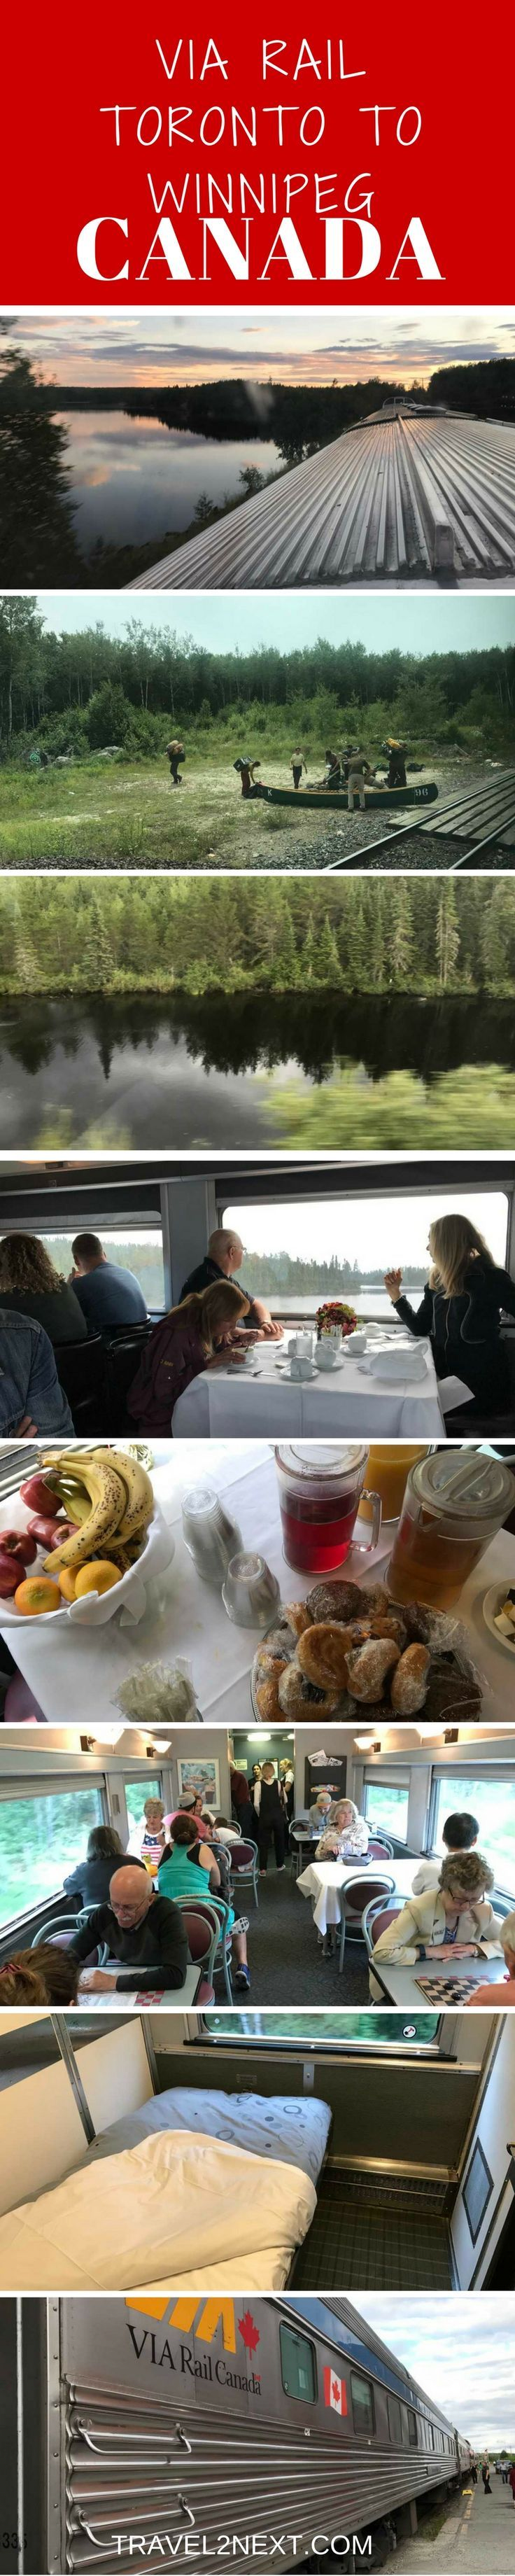 """""""The Canadian"""" is a train journey that travels 4466 km, from the Boreal forests of Northern Ontario through the Prairies to theCanadian Rockies. It's a classic train journey across Canada right through the heart of the country."""